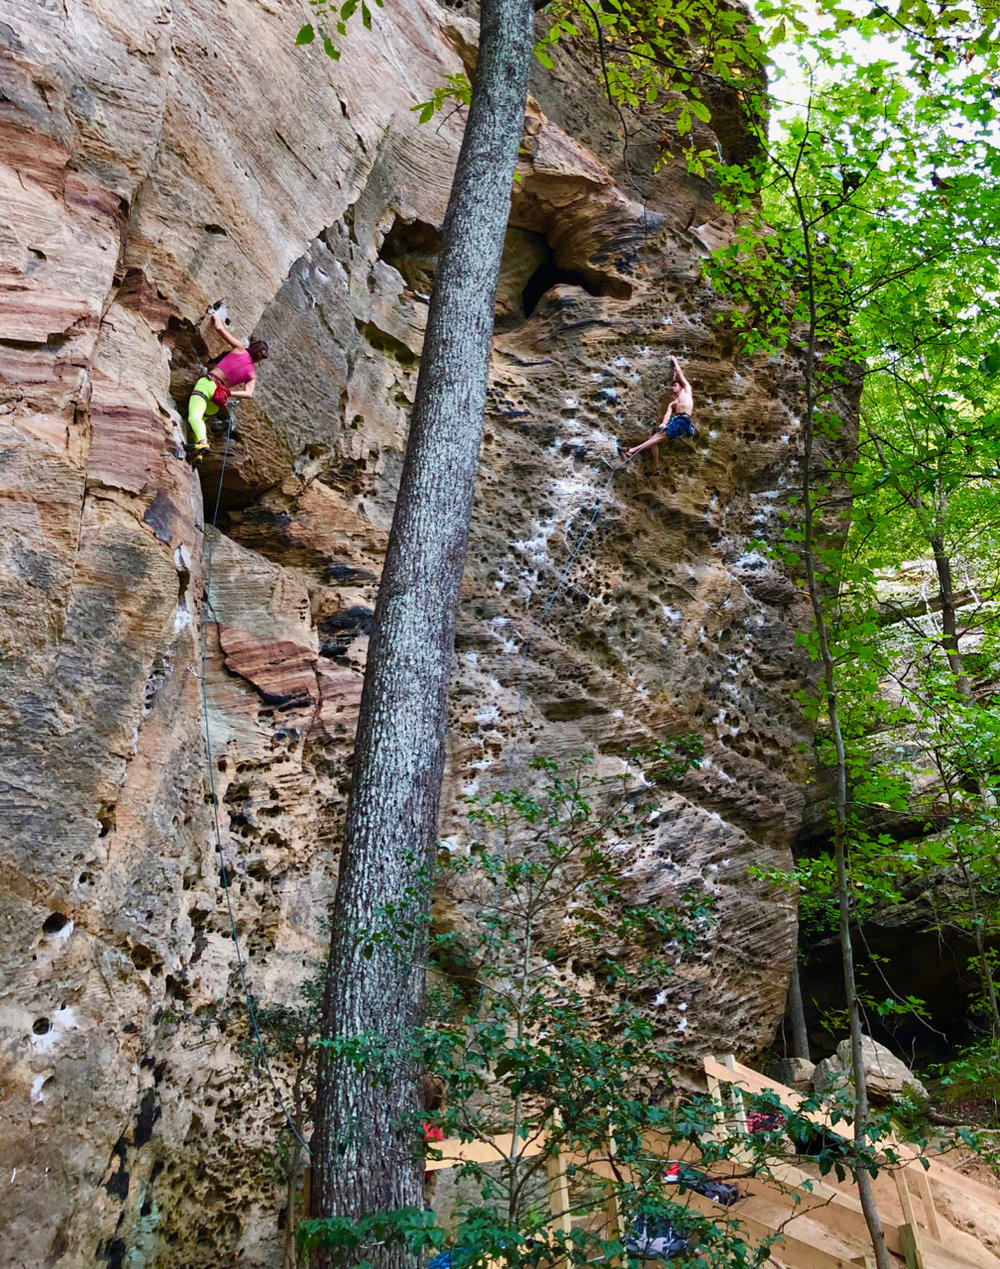 Steep pockets and edges typical of RRG. These routes are at the Chocolate Factory, an excellent, long cliff band near the Motherlode. The climber on the left is on Snozzberries (5.12a) - steep jugs to a hueco rest and a tricky finish. The climber on the right is on Naked (5.12a) - pockets all the way.